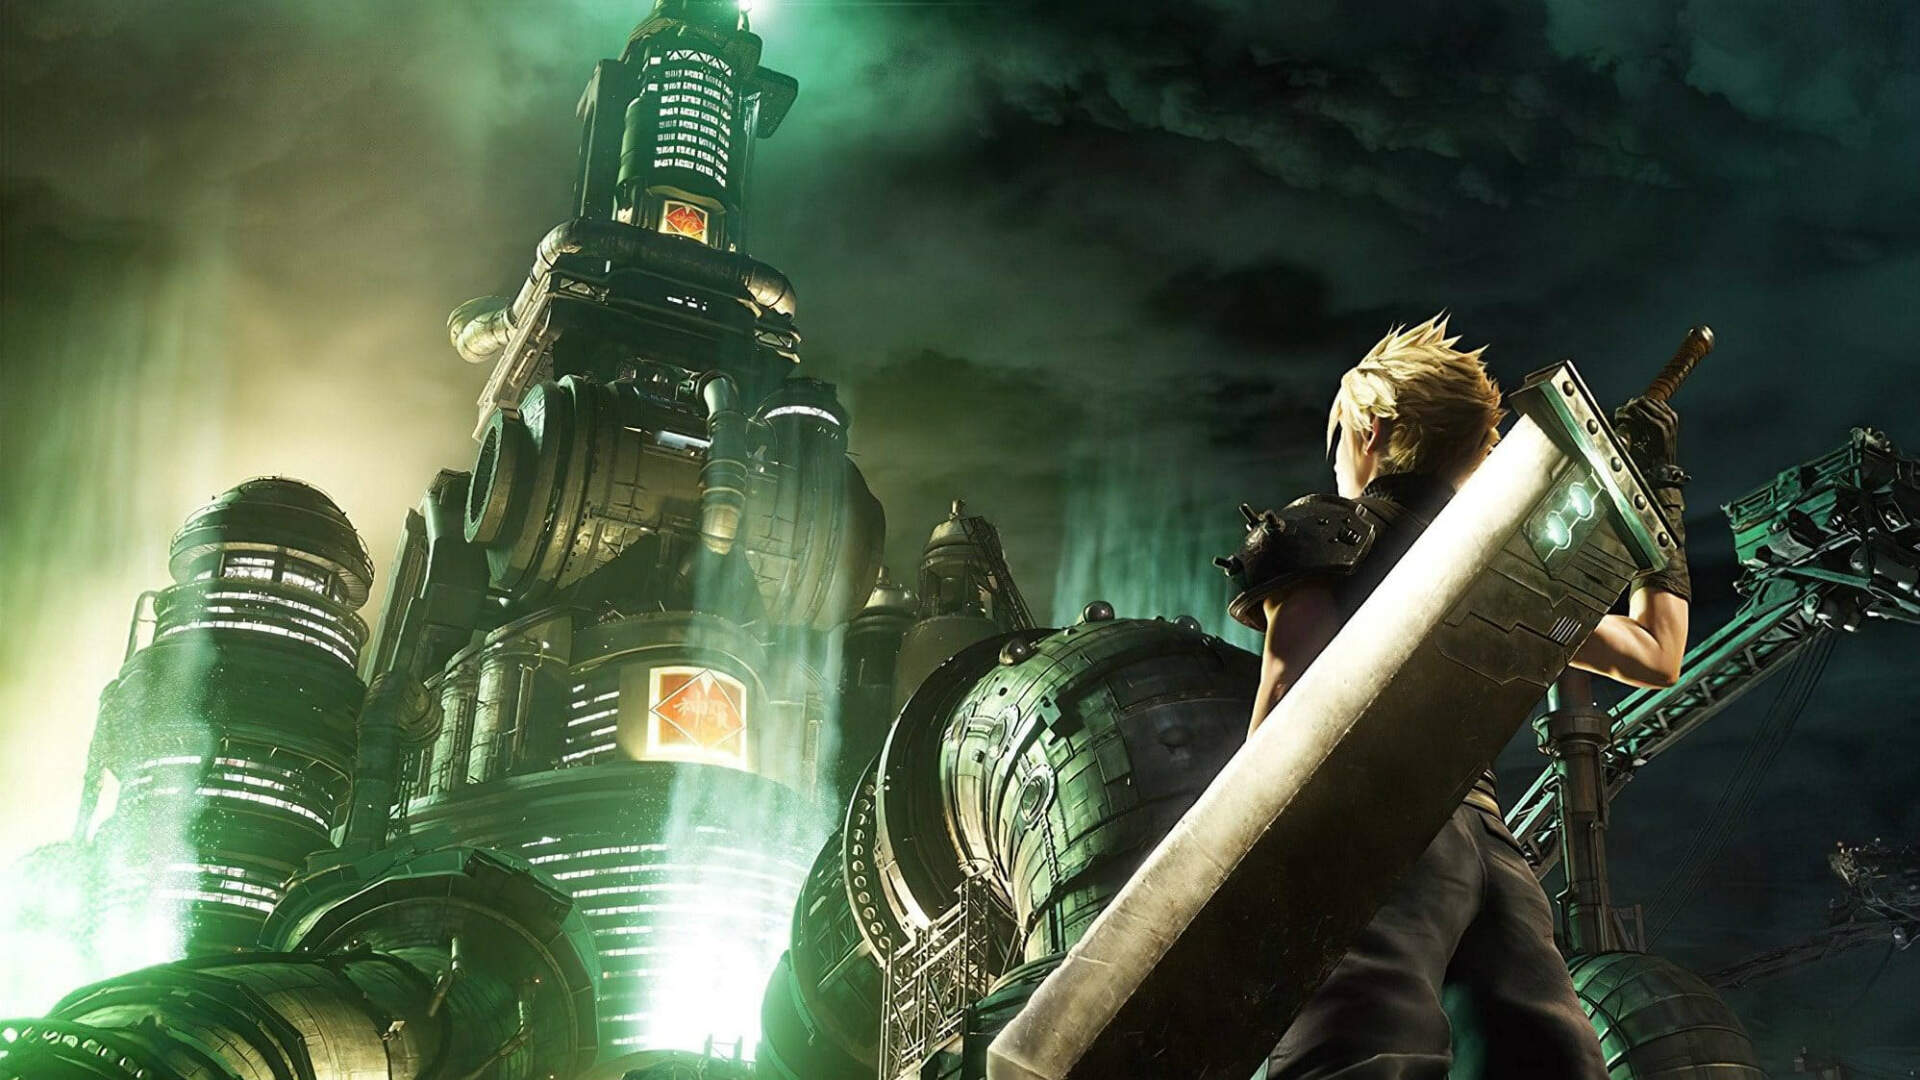 Square Enix Should Be Clearer About Final Fantasy 7 Remake Being a Multi-Parter